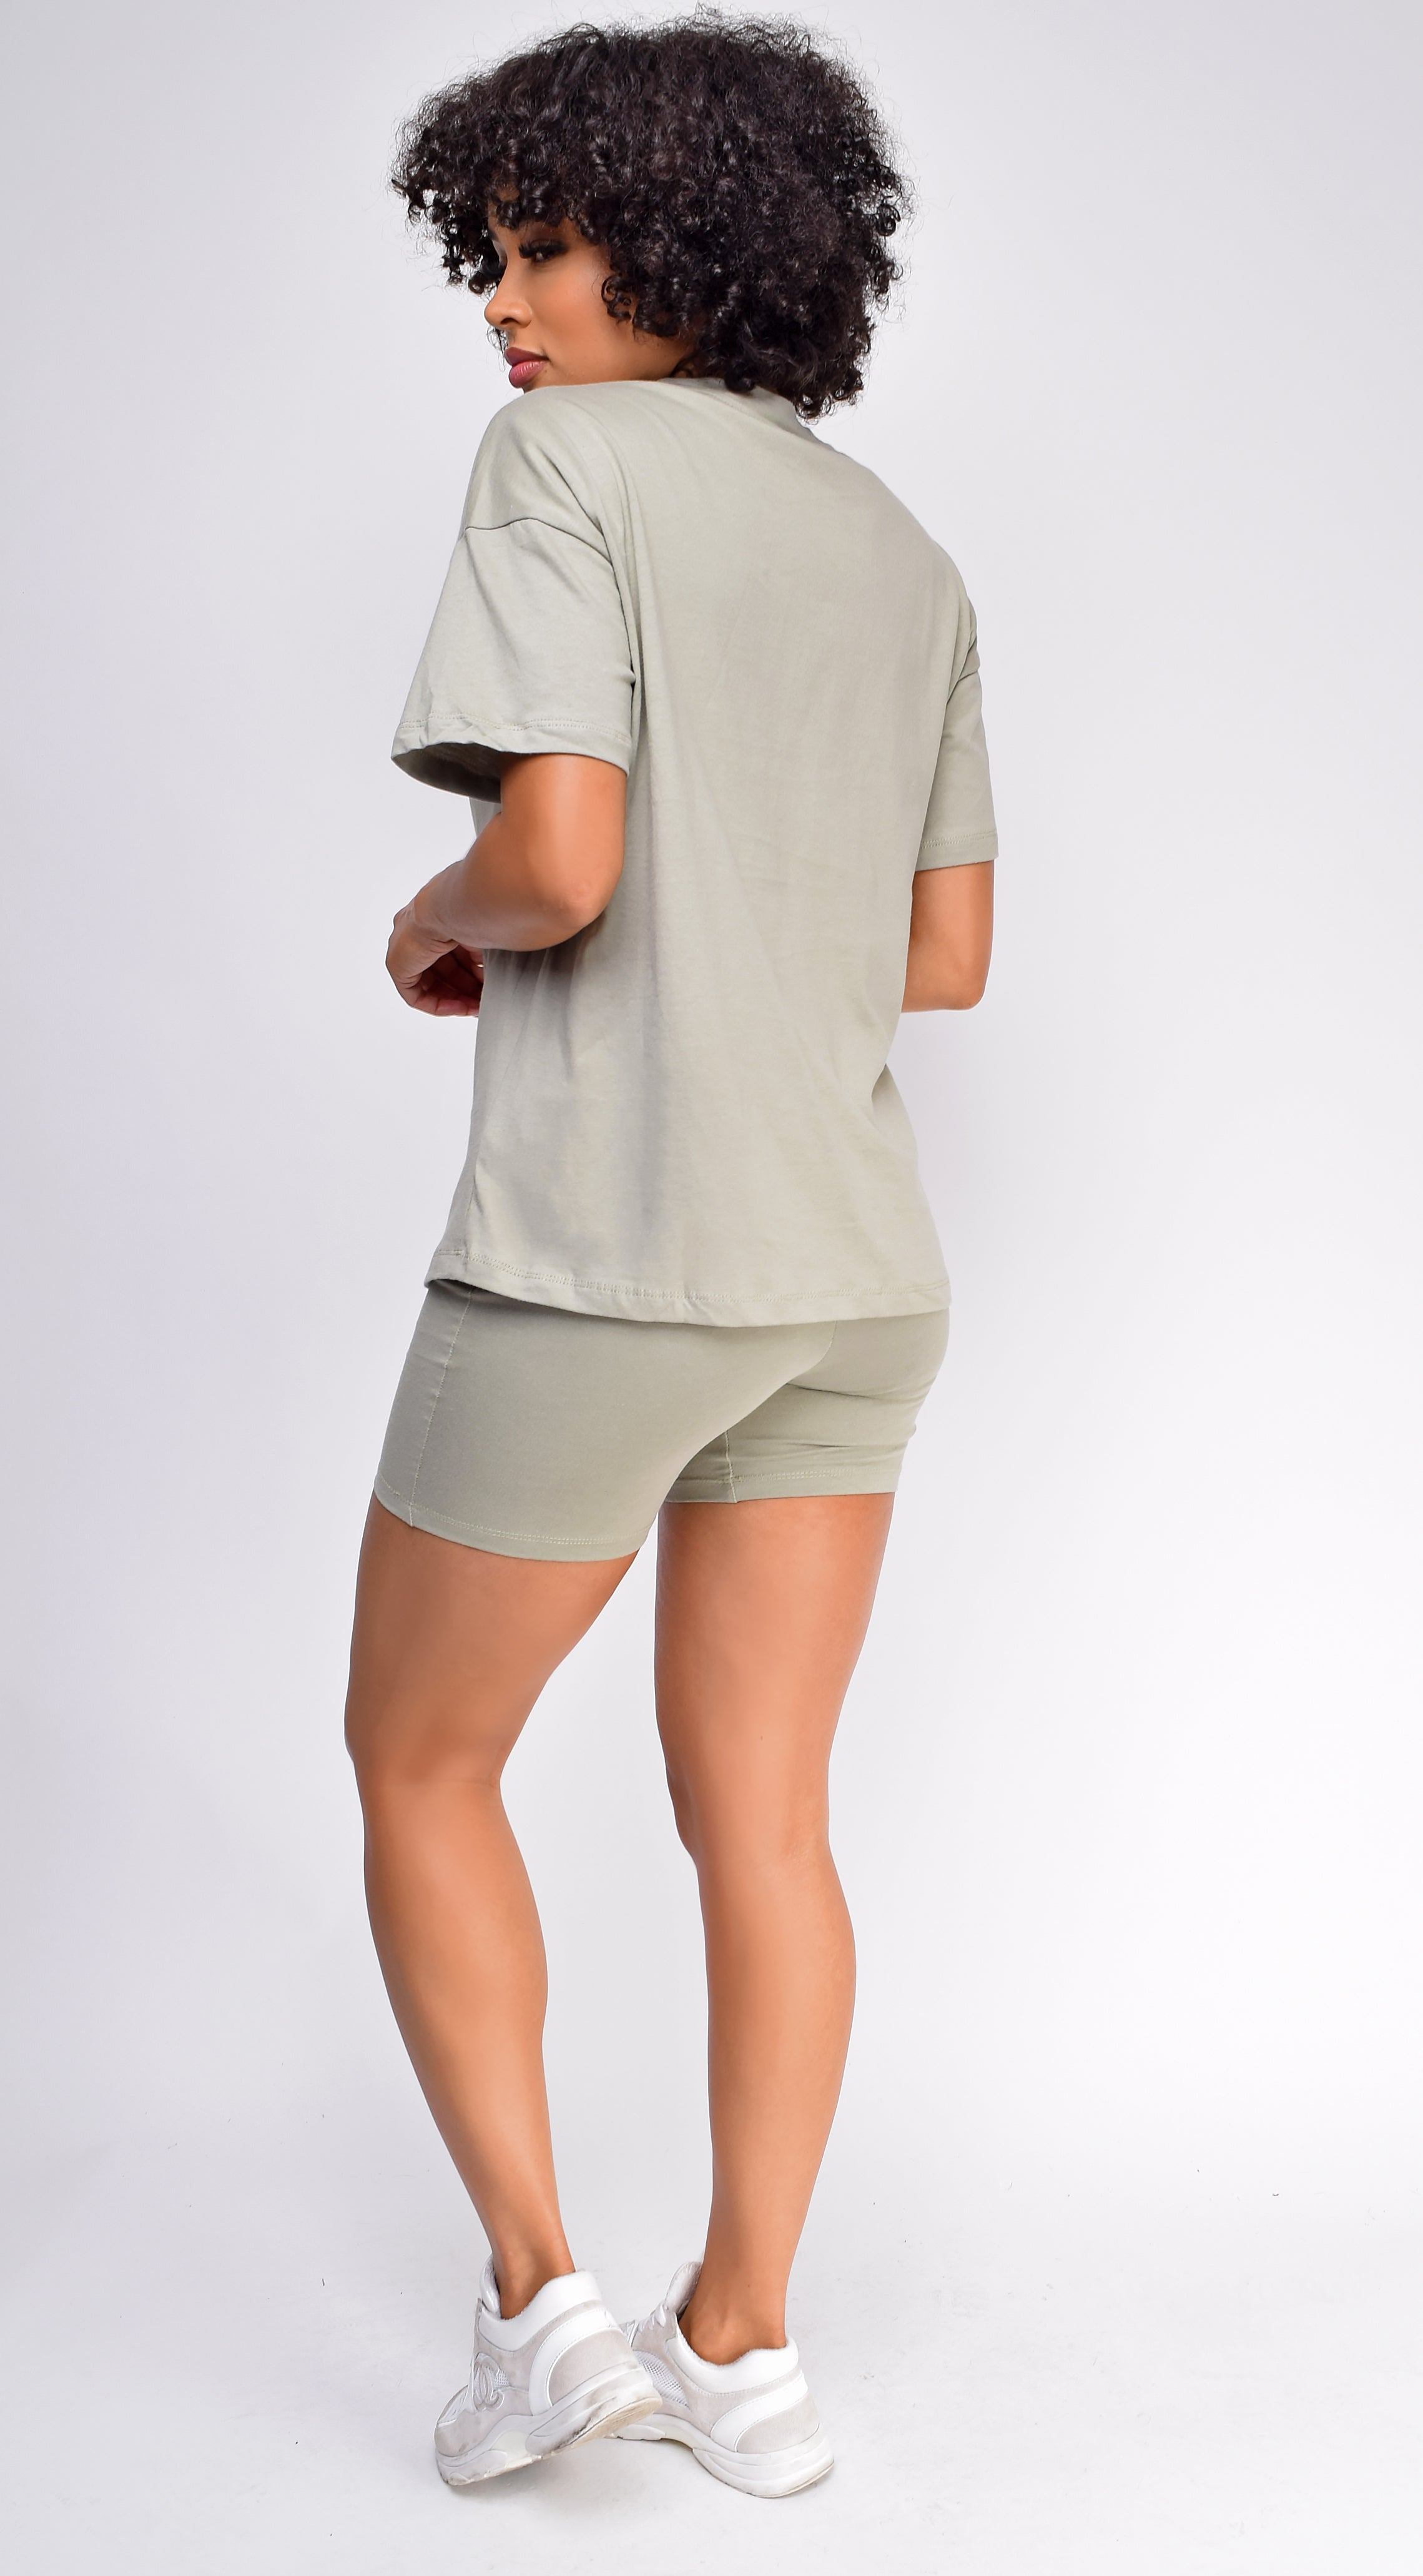 Oversized Olive Green T-Shirt And Biker Short Two Piece Set